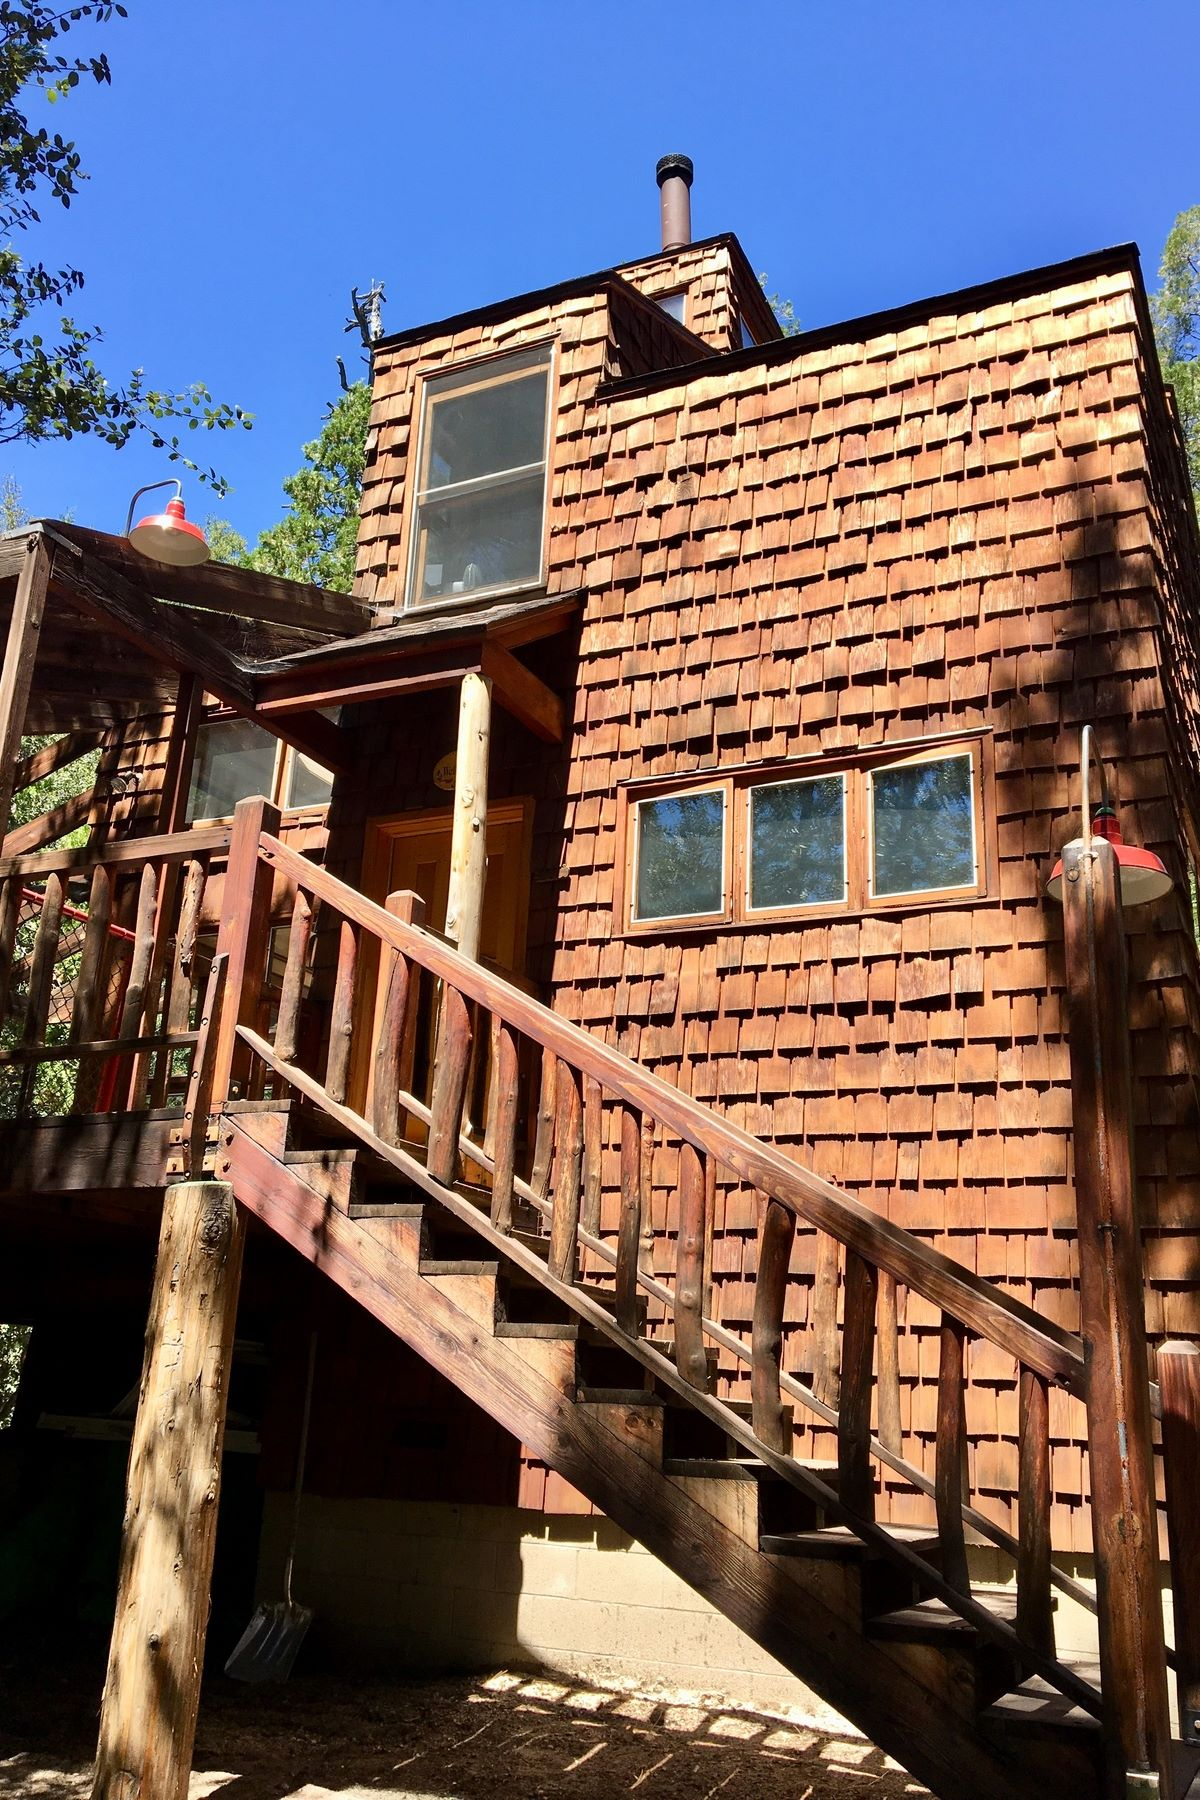 Single Family Homes for Sale at 25355 Fern Valley Road 25355 Fern Valley Rd Idyllwild, California 92549 United States